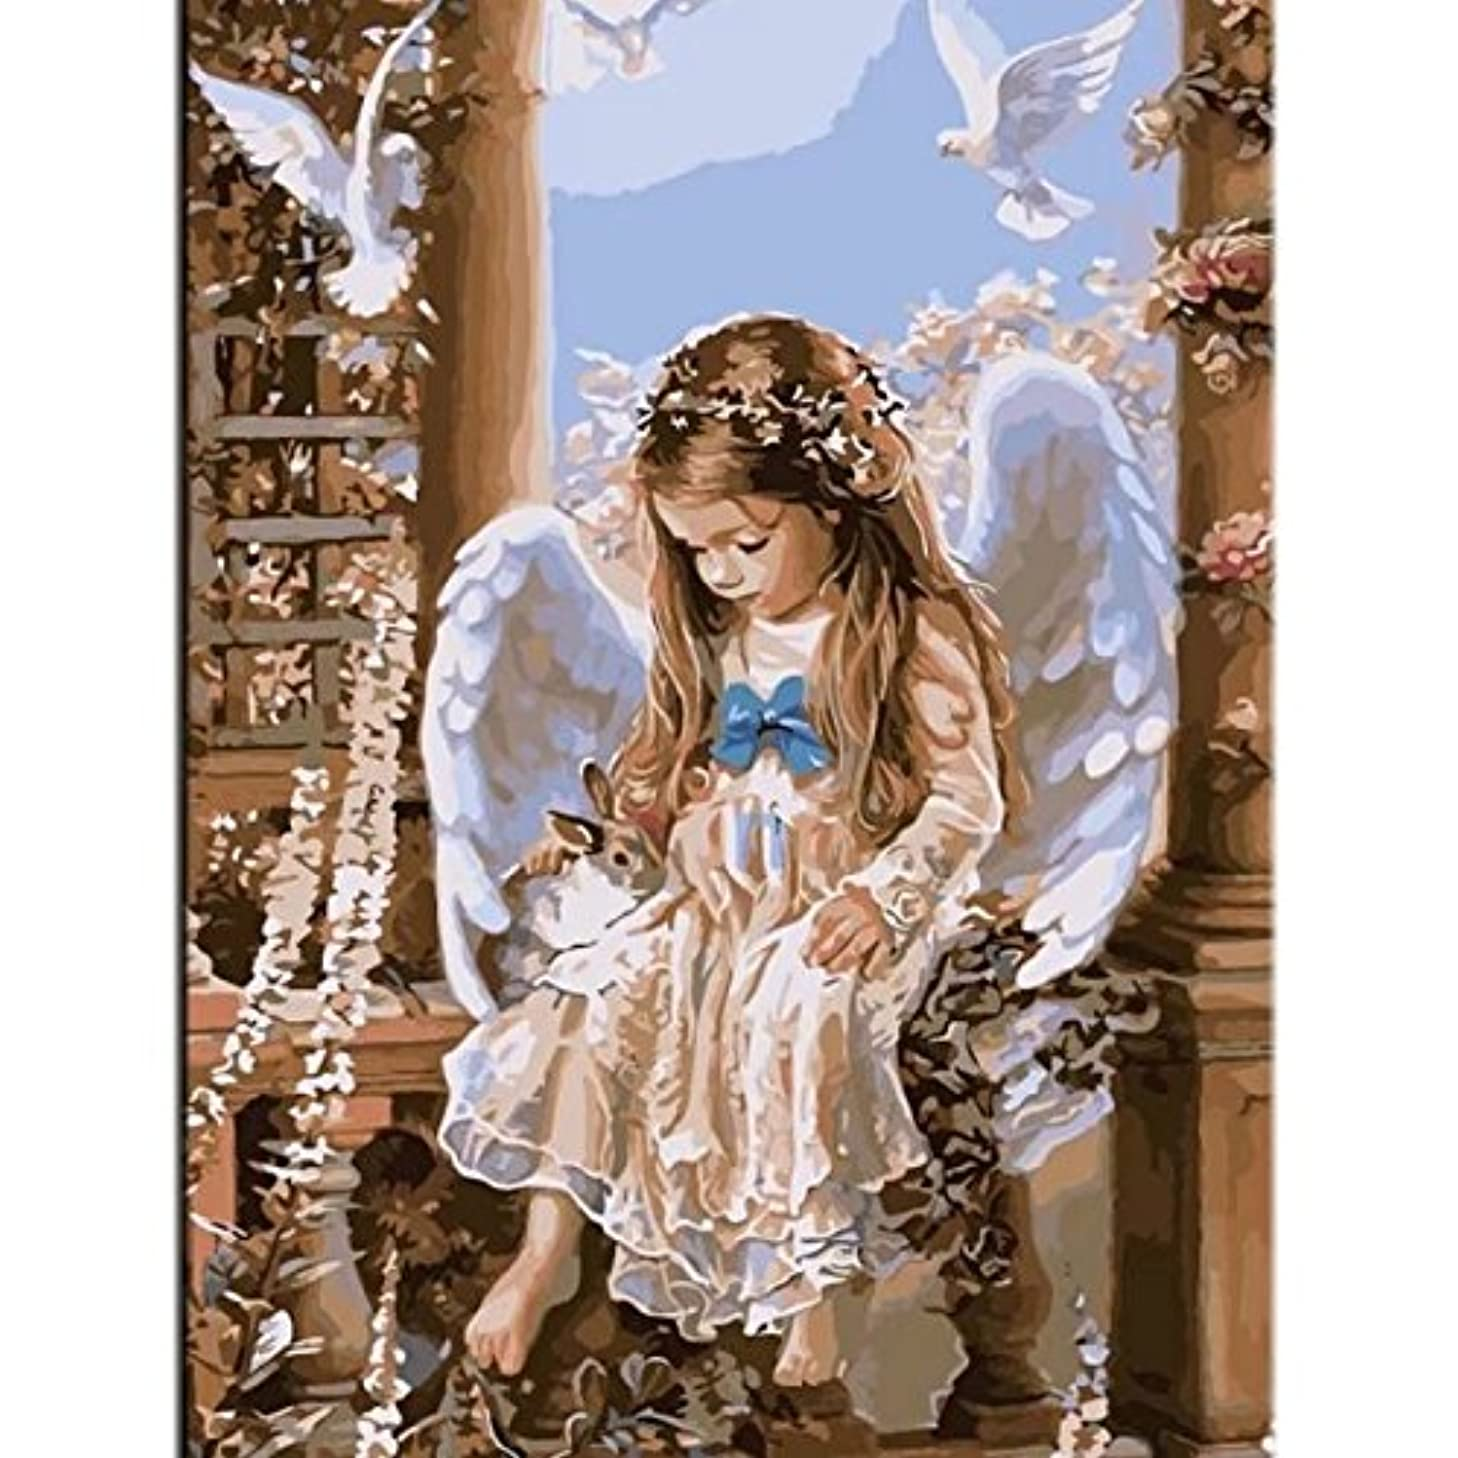 Simple Paintworks Paint by Number Kit for Adults Beginner Children Seniors Junior No Blending No Mixing Linen Canvas Wall Picture Acrylics Painting Home Decor Angel and Rabbit 16x20 Inch Frameless